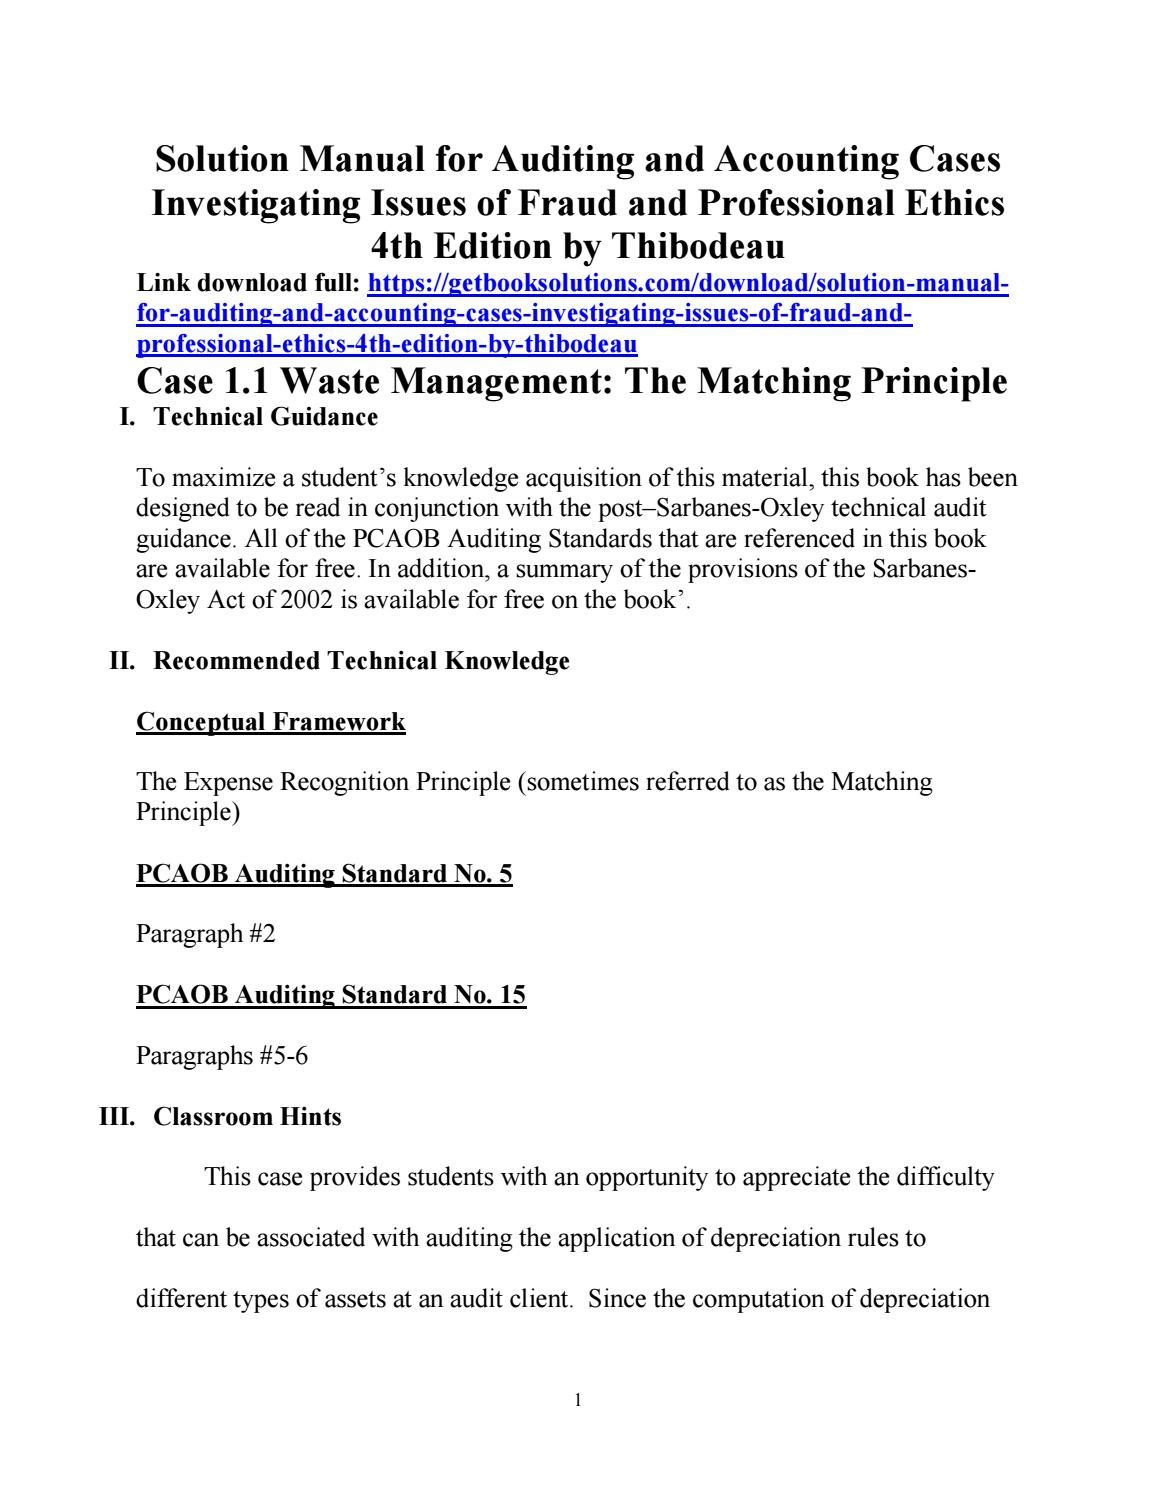 solution manual for auditing and accounting cases investigating rh pinterest com auditing cases solution manual Math Solution Manual